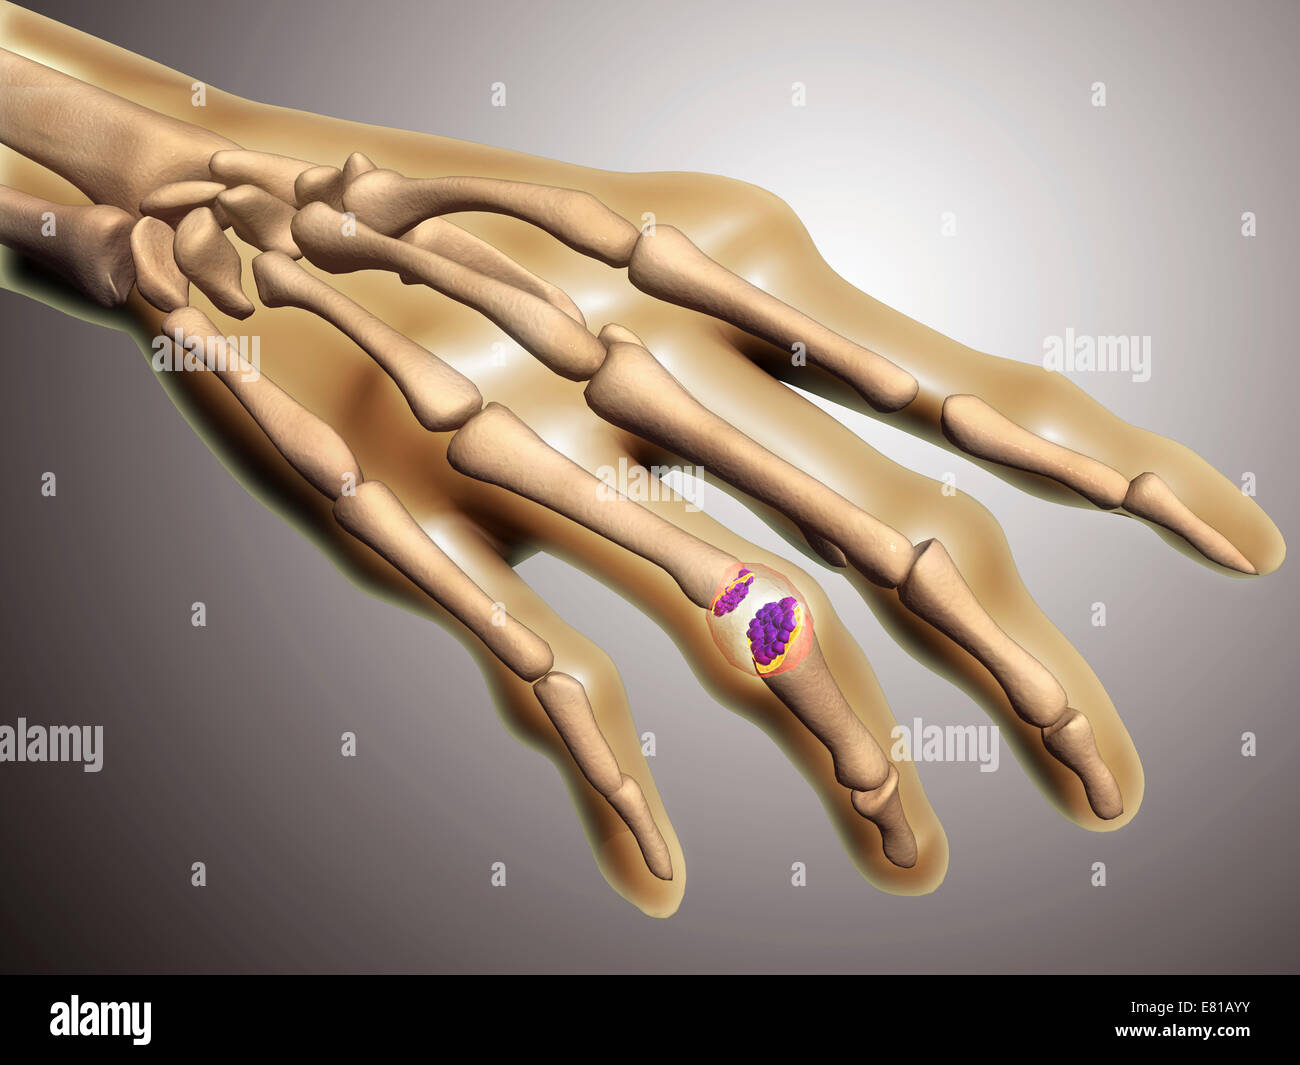 Conceptual image of rheumatoid arthritis (RA) in the human hand. RA is a chronic inflammatory disorder that typically - Stock Image